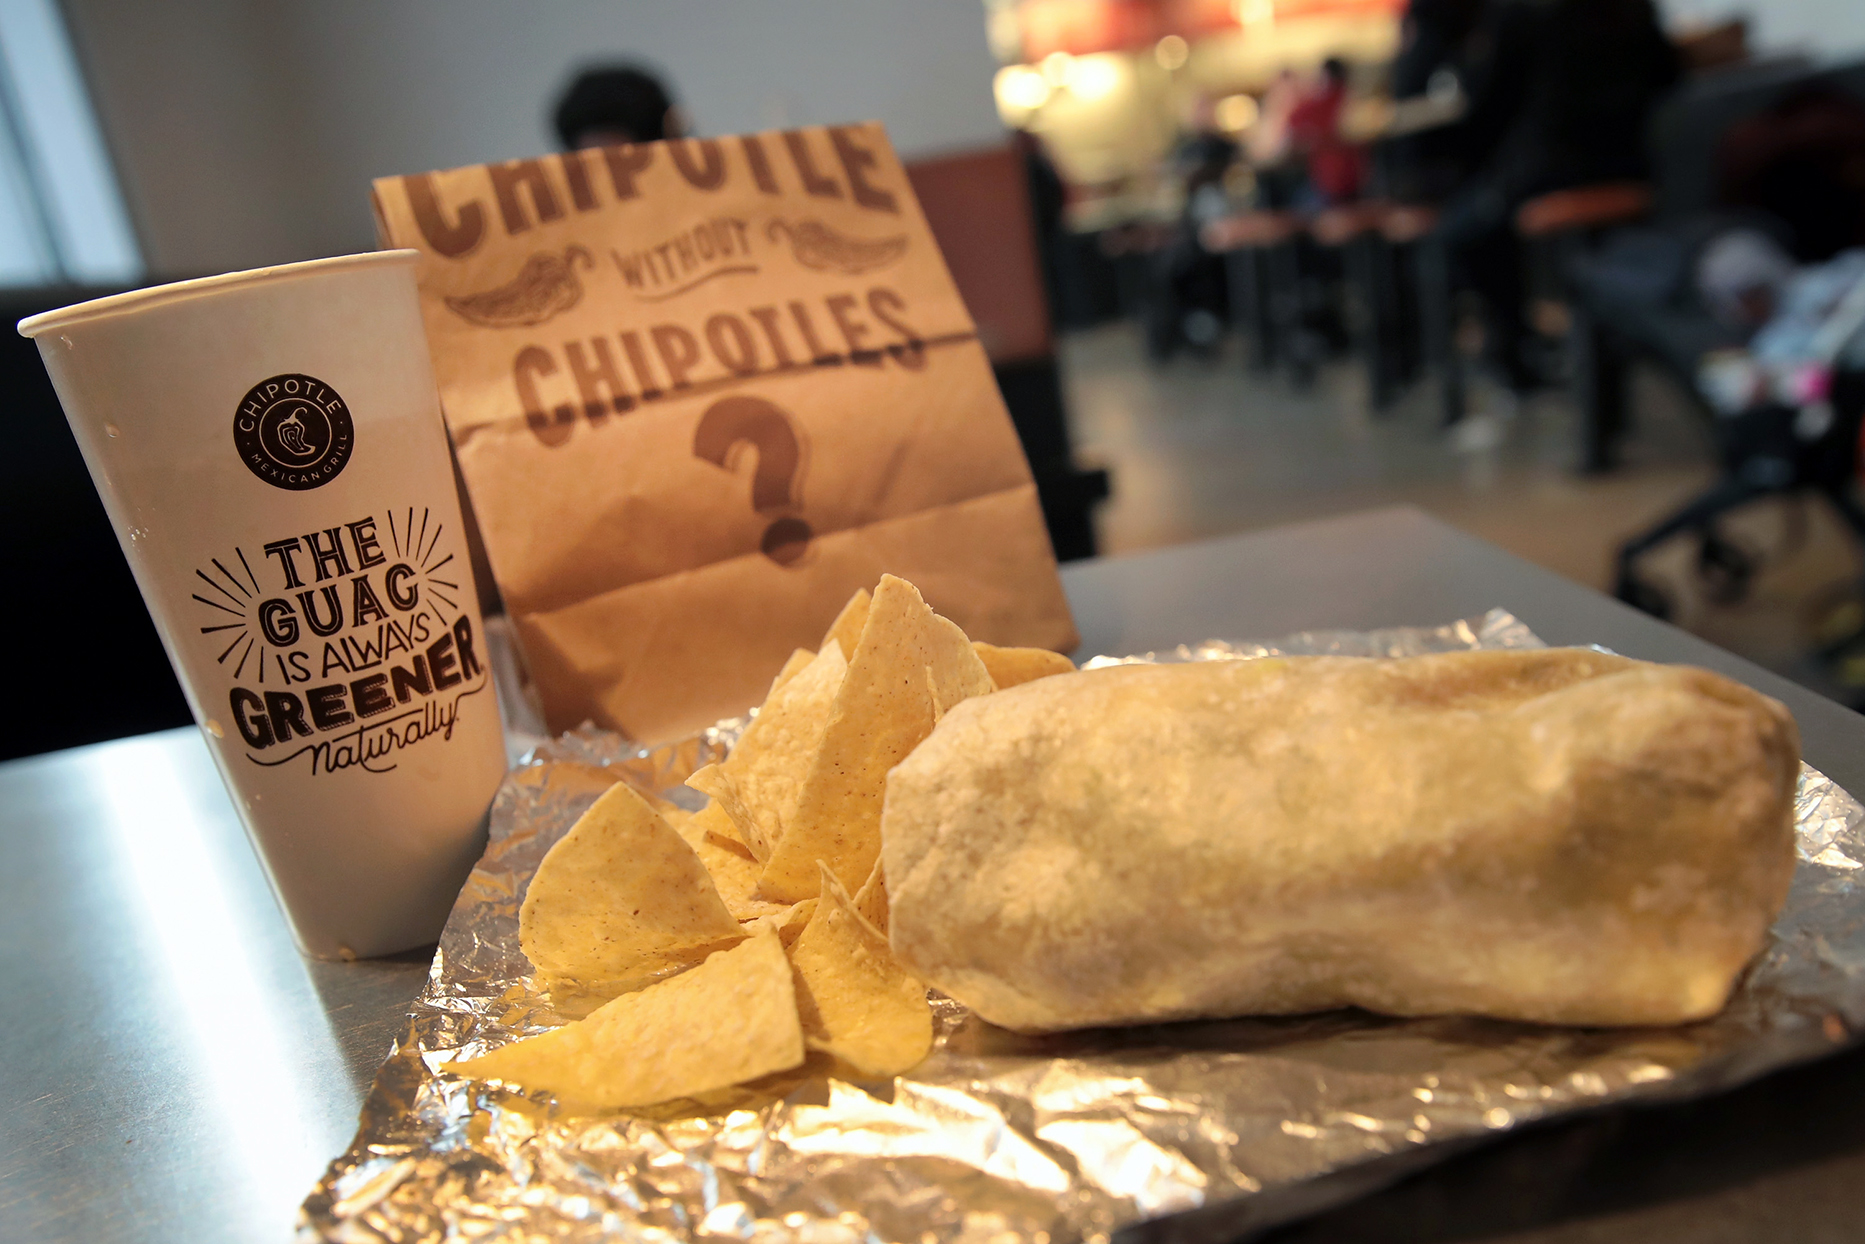 Chipotle meal of burrito and chips on foil in restaurant with drink cup and brown paper bag in background.